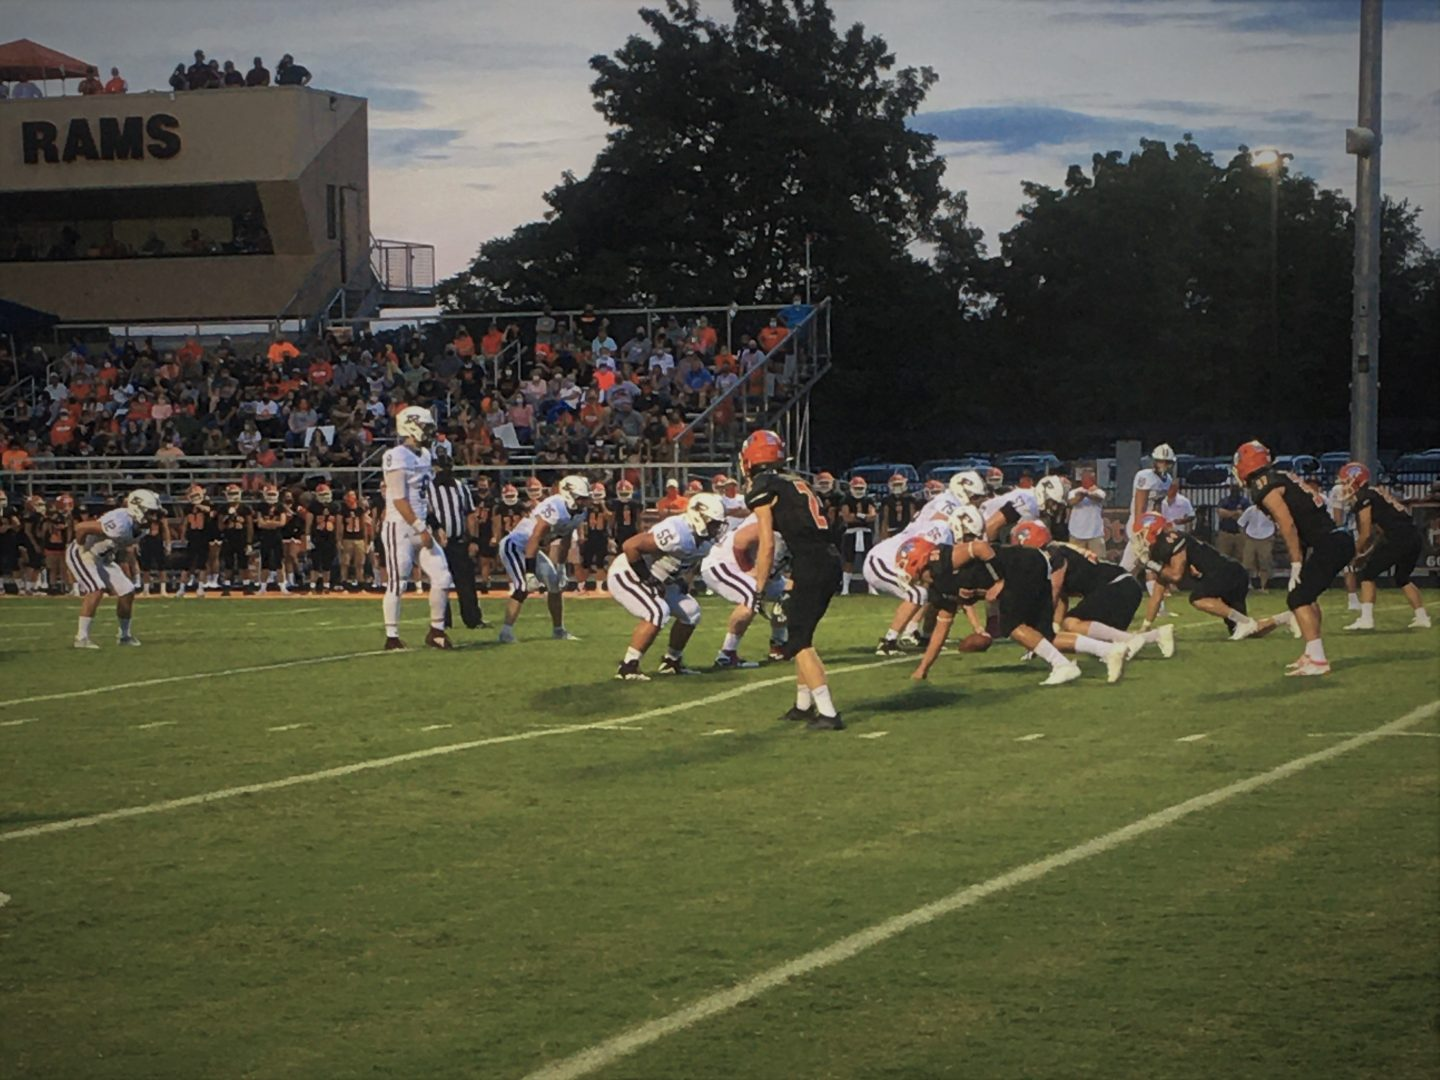 HIGH SCHOOL FOOTBALL: Pikeville wins for first time in 64 years at Raceland